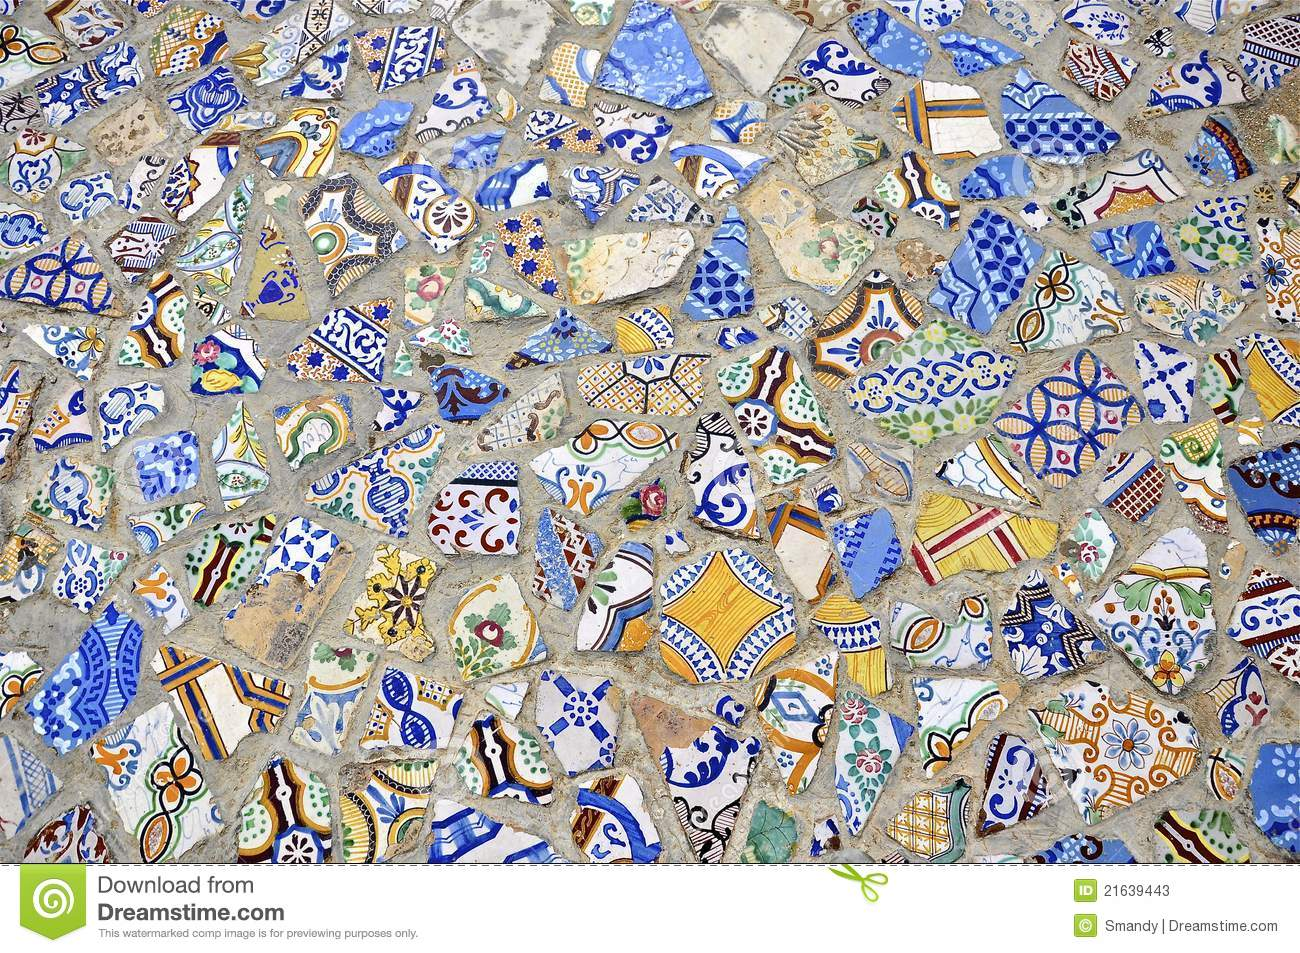 Mosaic tiles floor design stock image image of fashioned 21639443 mosaic tiles floor design ppazfo